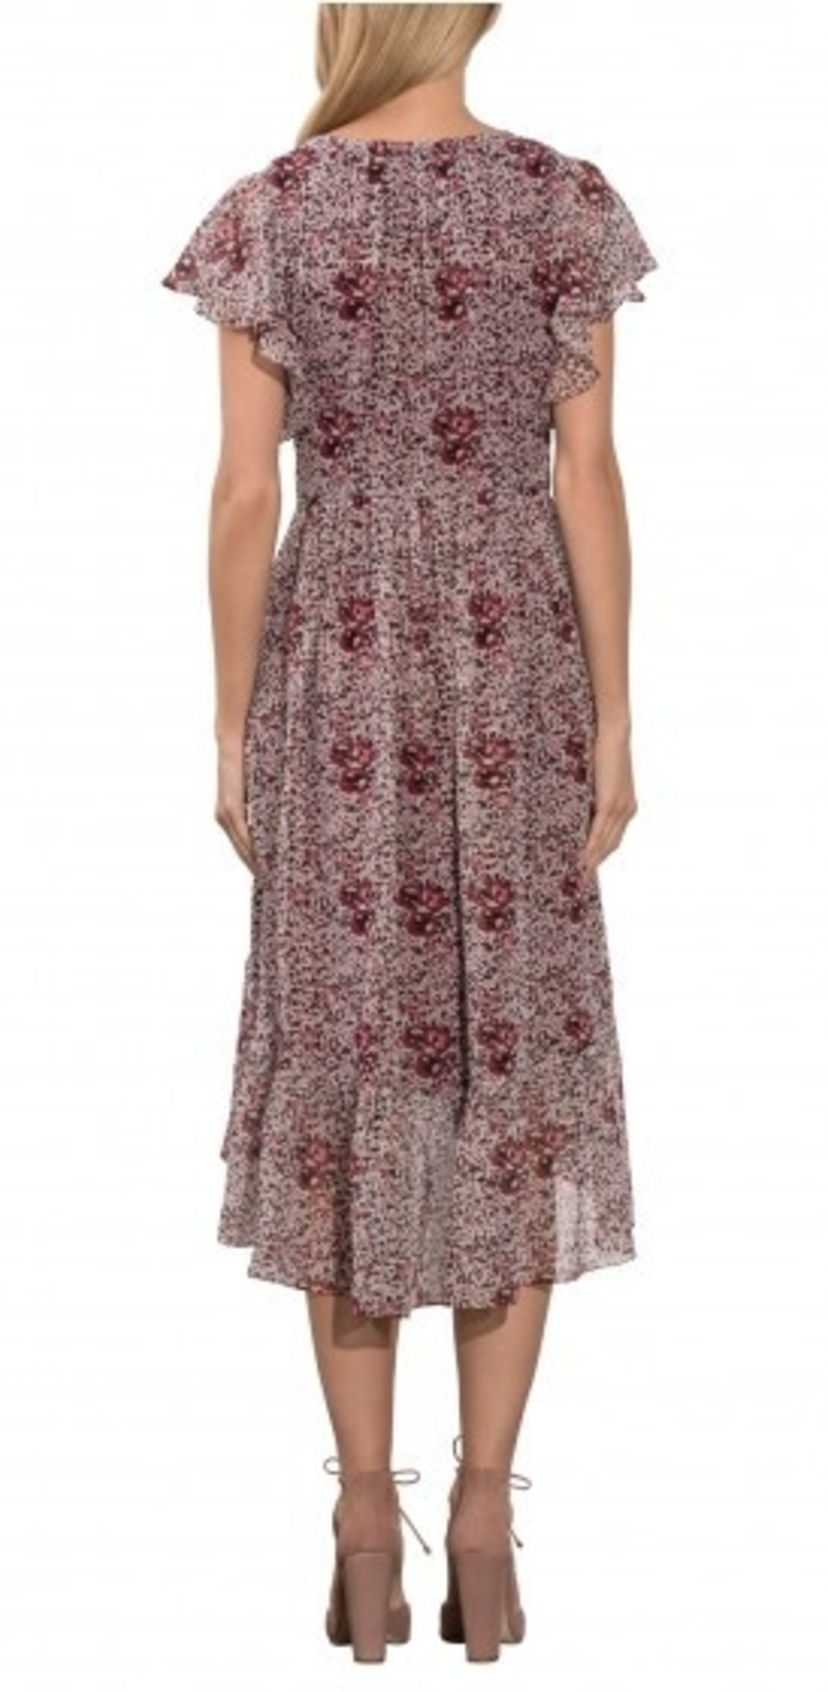 Shoshanna Elanora Dress Dresses